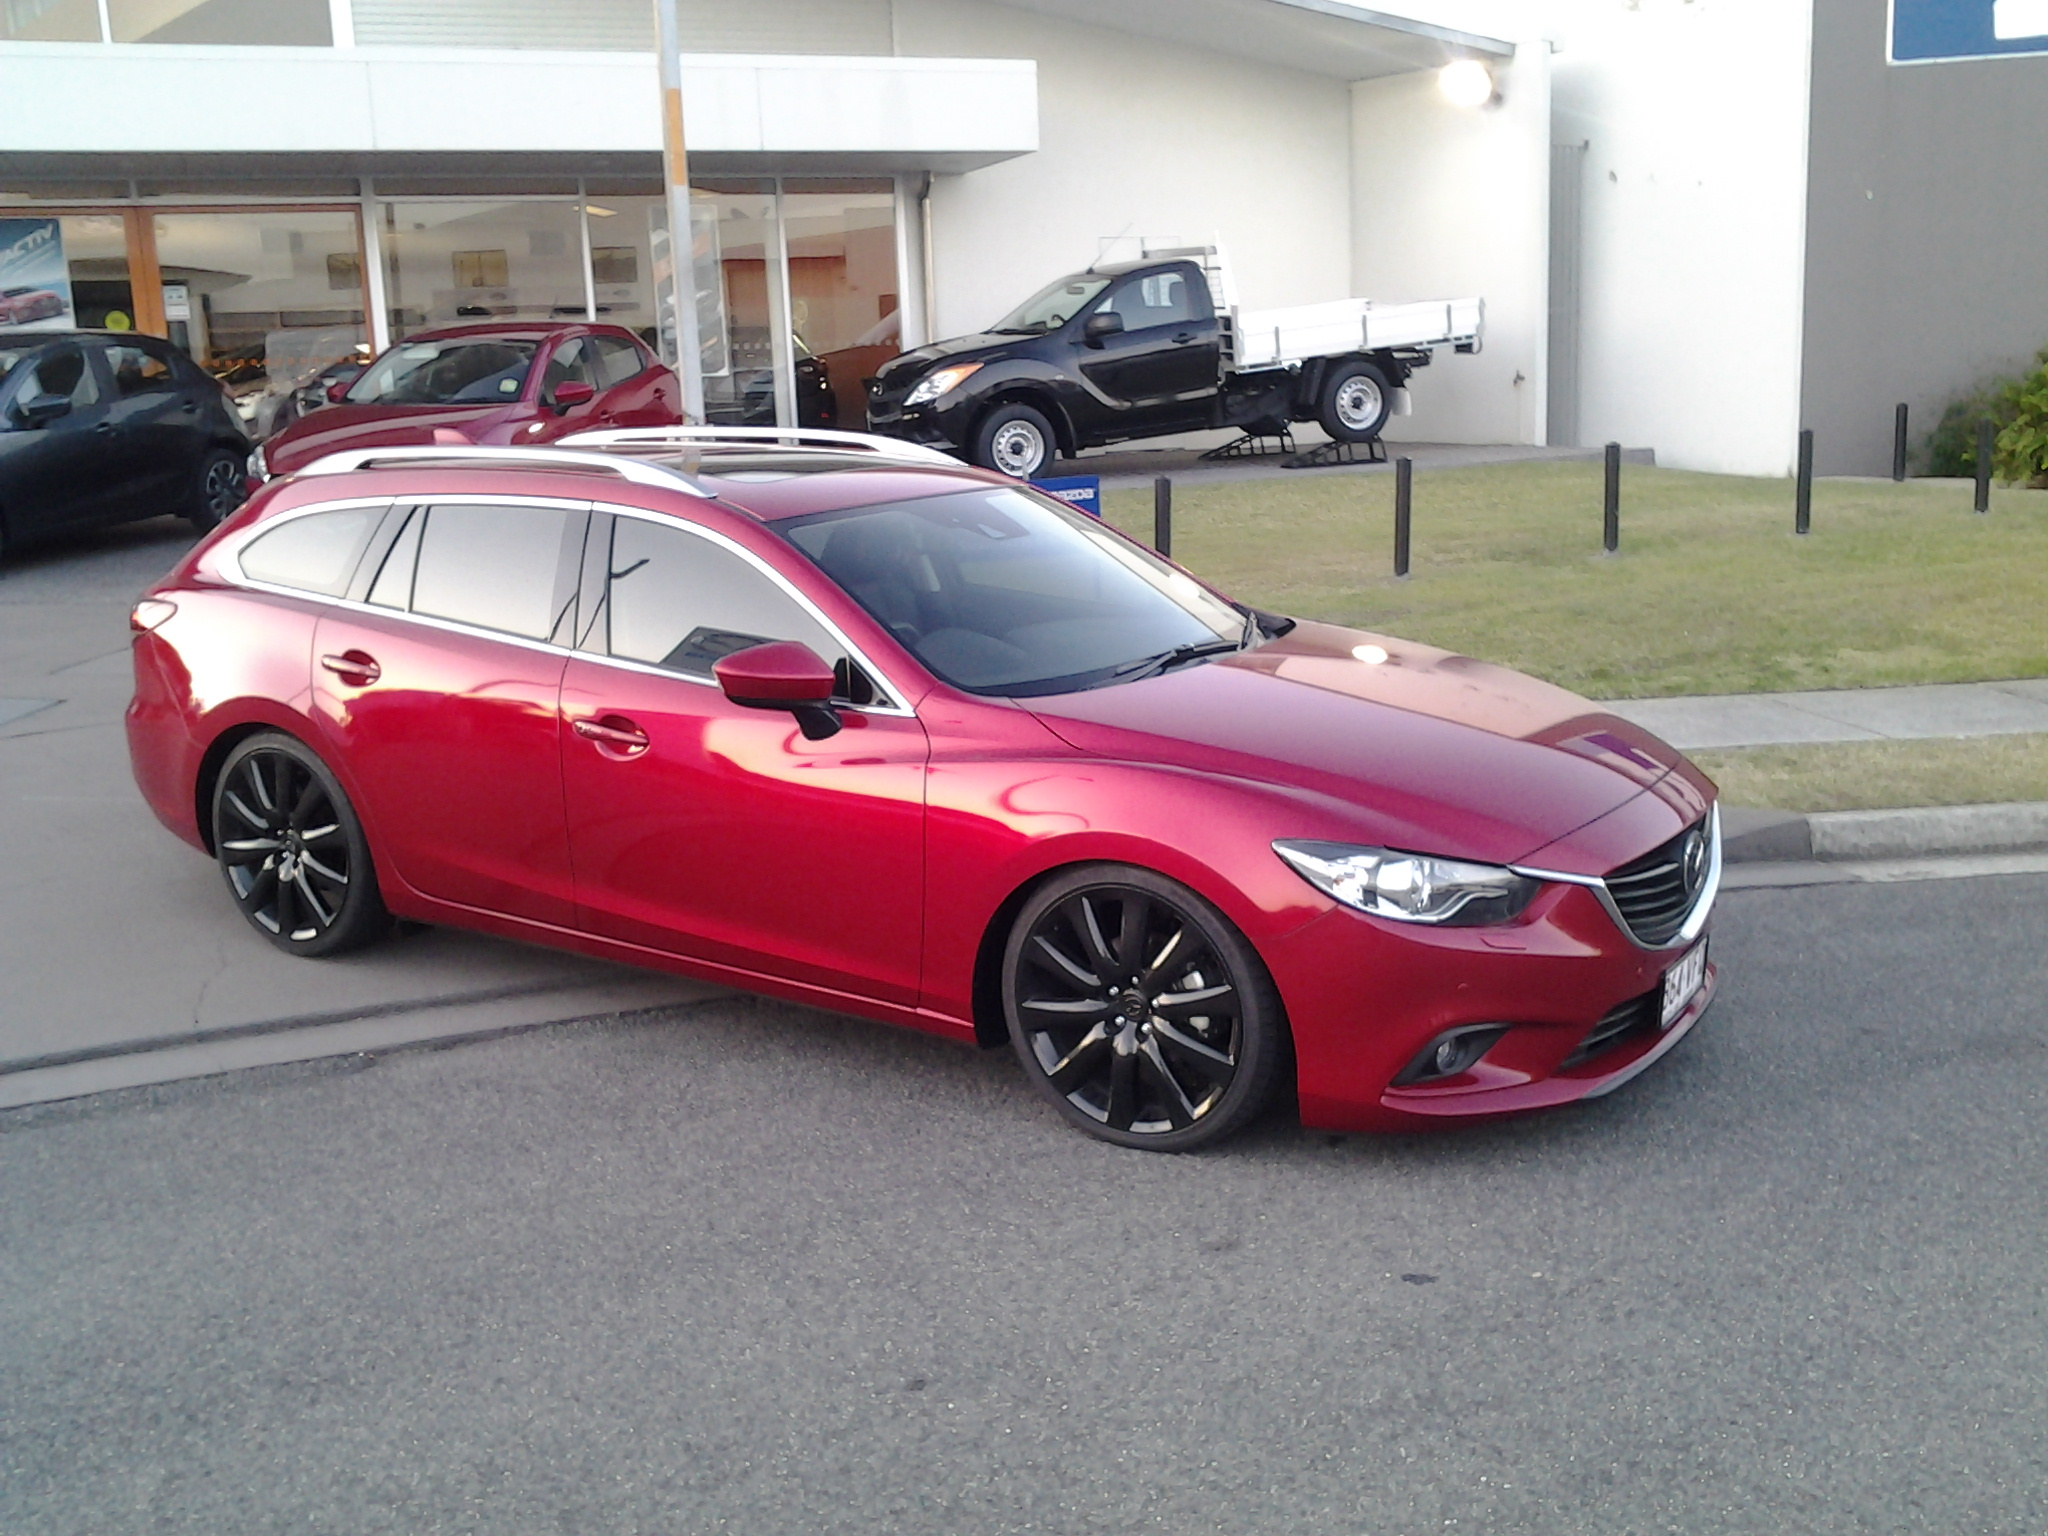 http://forum.mazda6club.com/attachments/mazda-6-2nd-generation-2008-2013/134009d1417179140-lowered-6-s-post-pics-your-lowered-6-2014-11-14-18.00.31.jpg